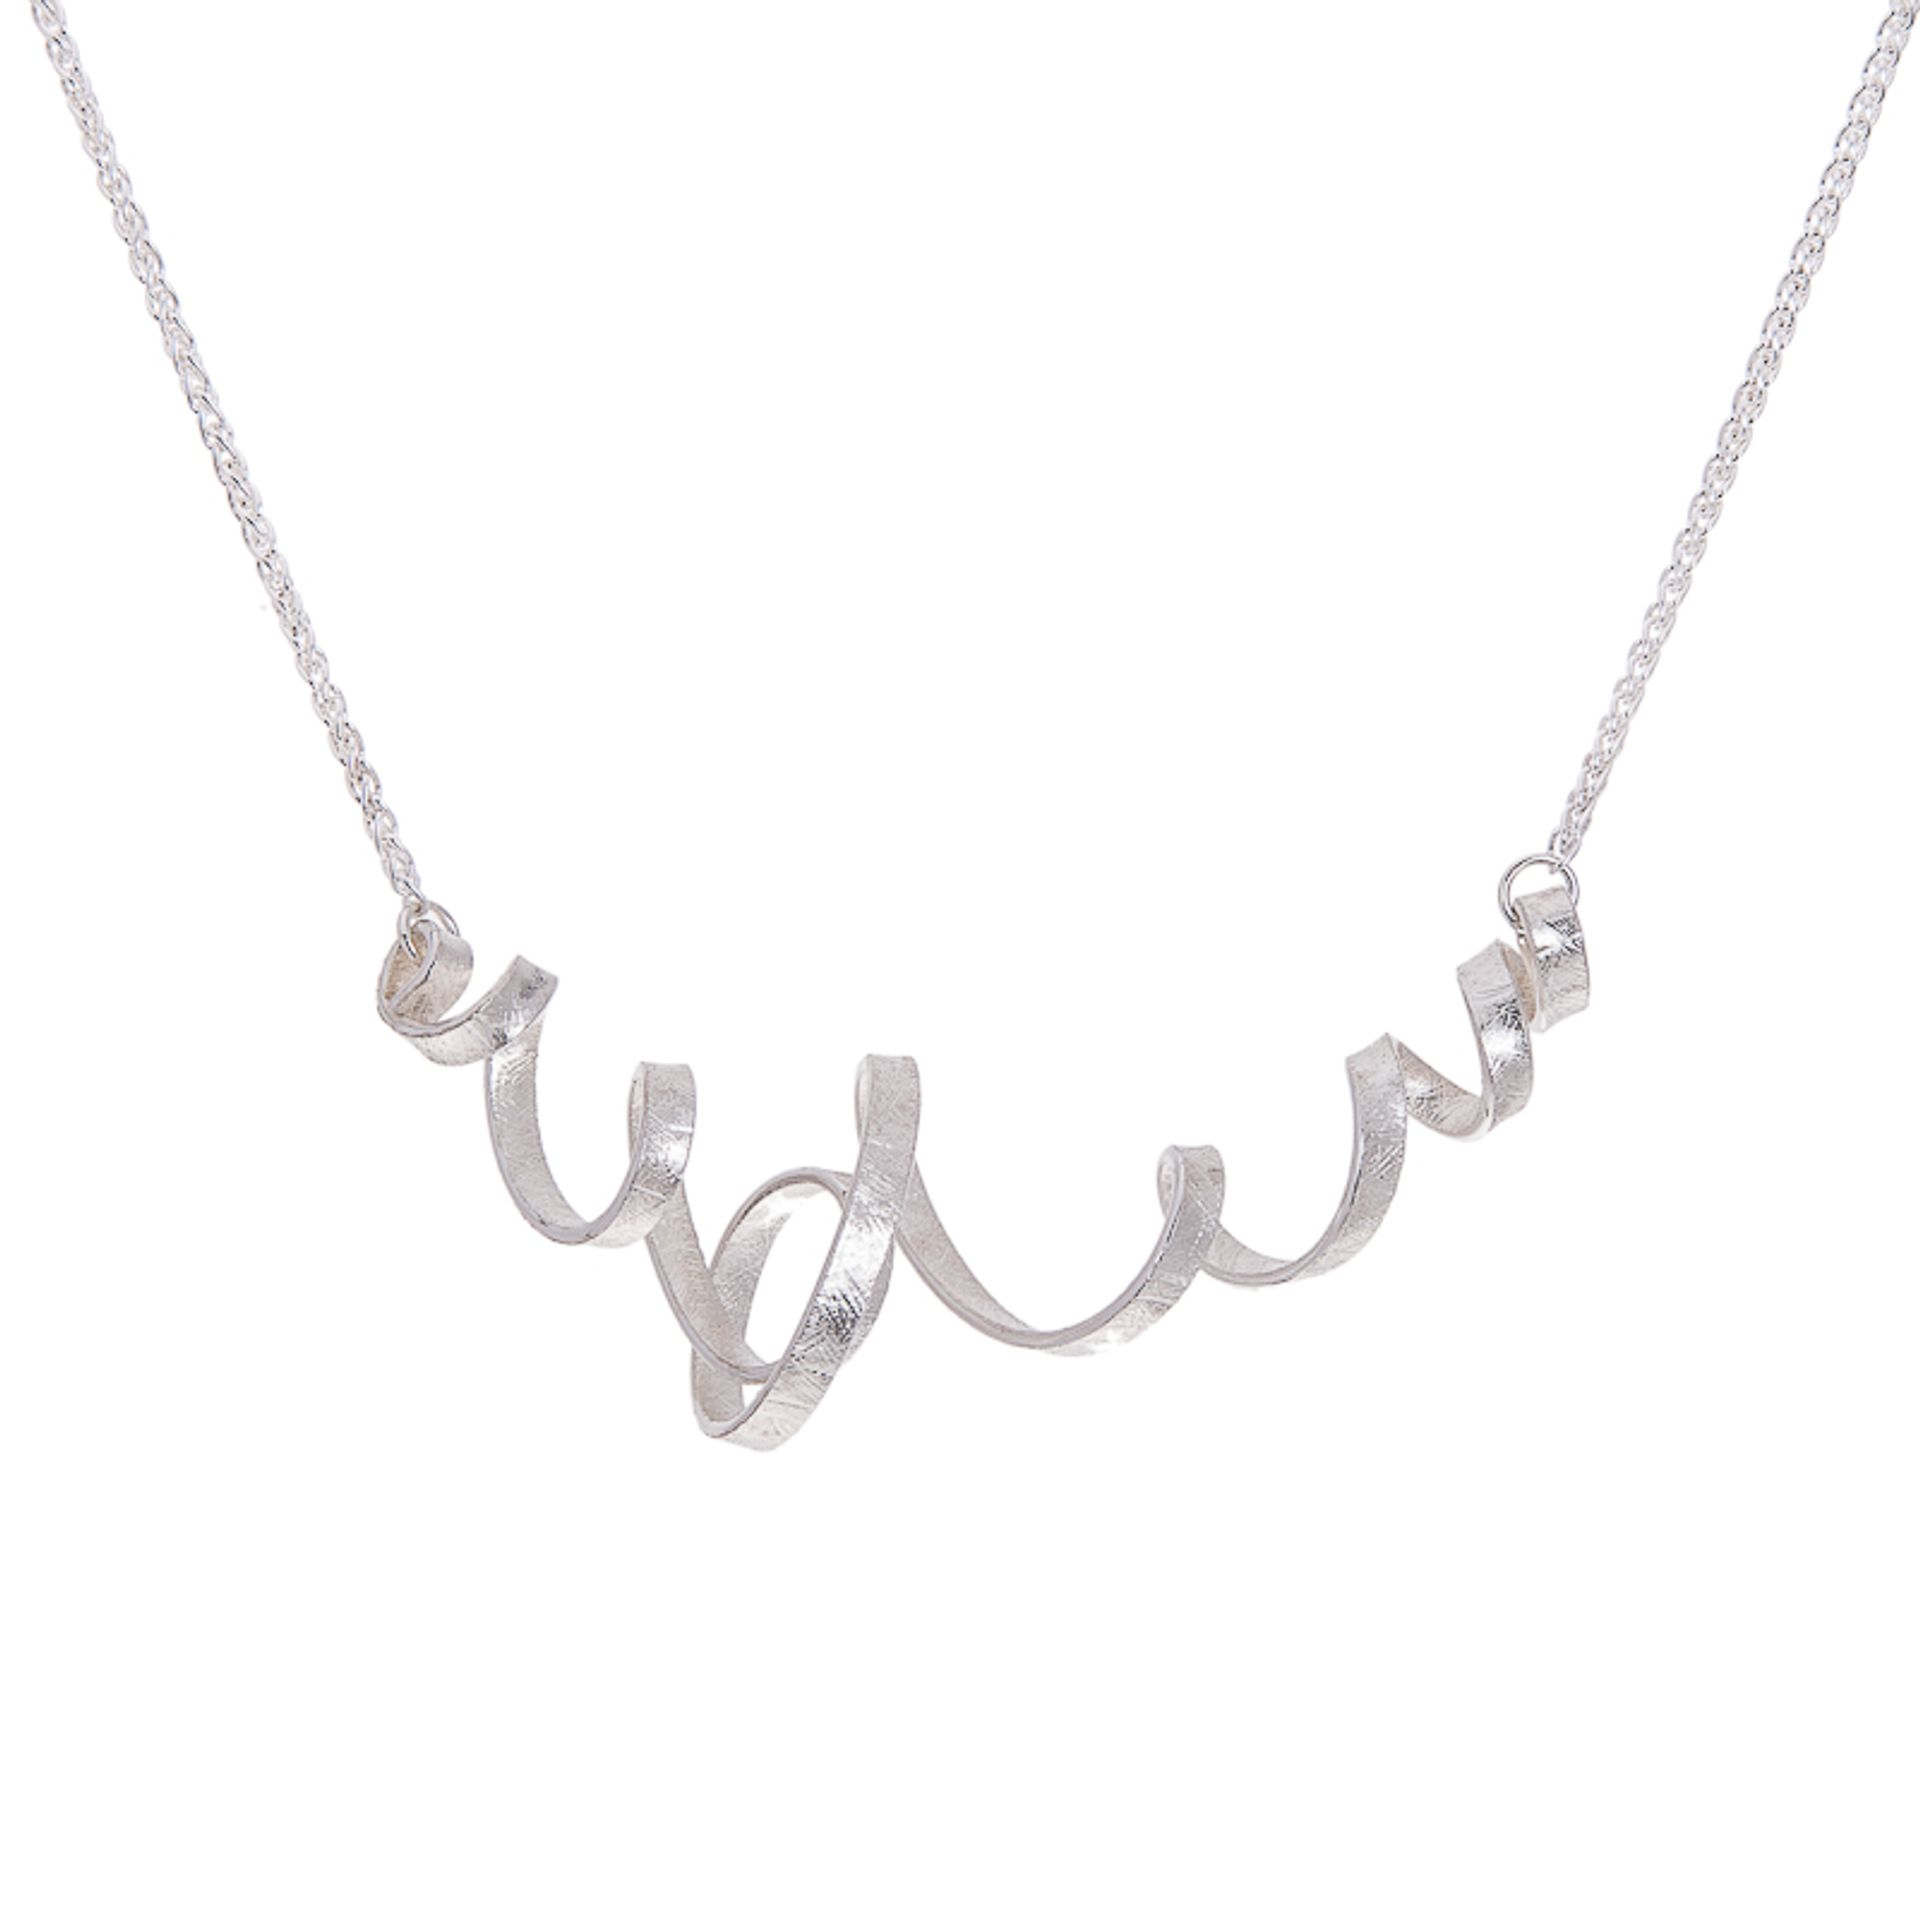 Silver spin necklace